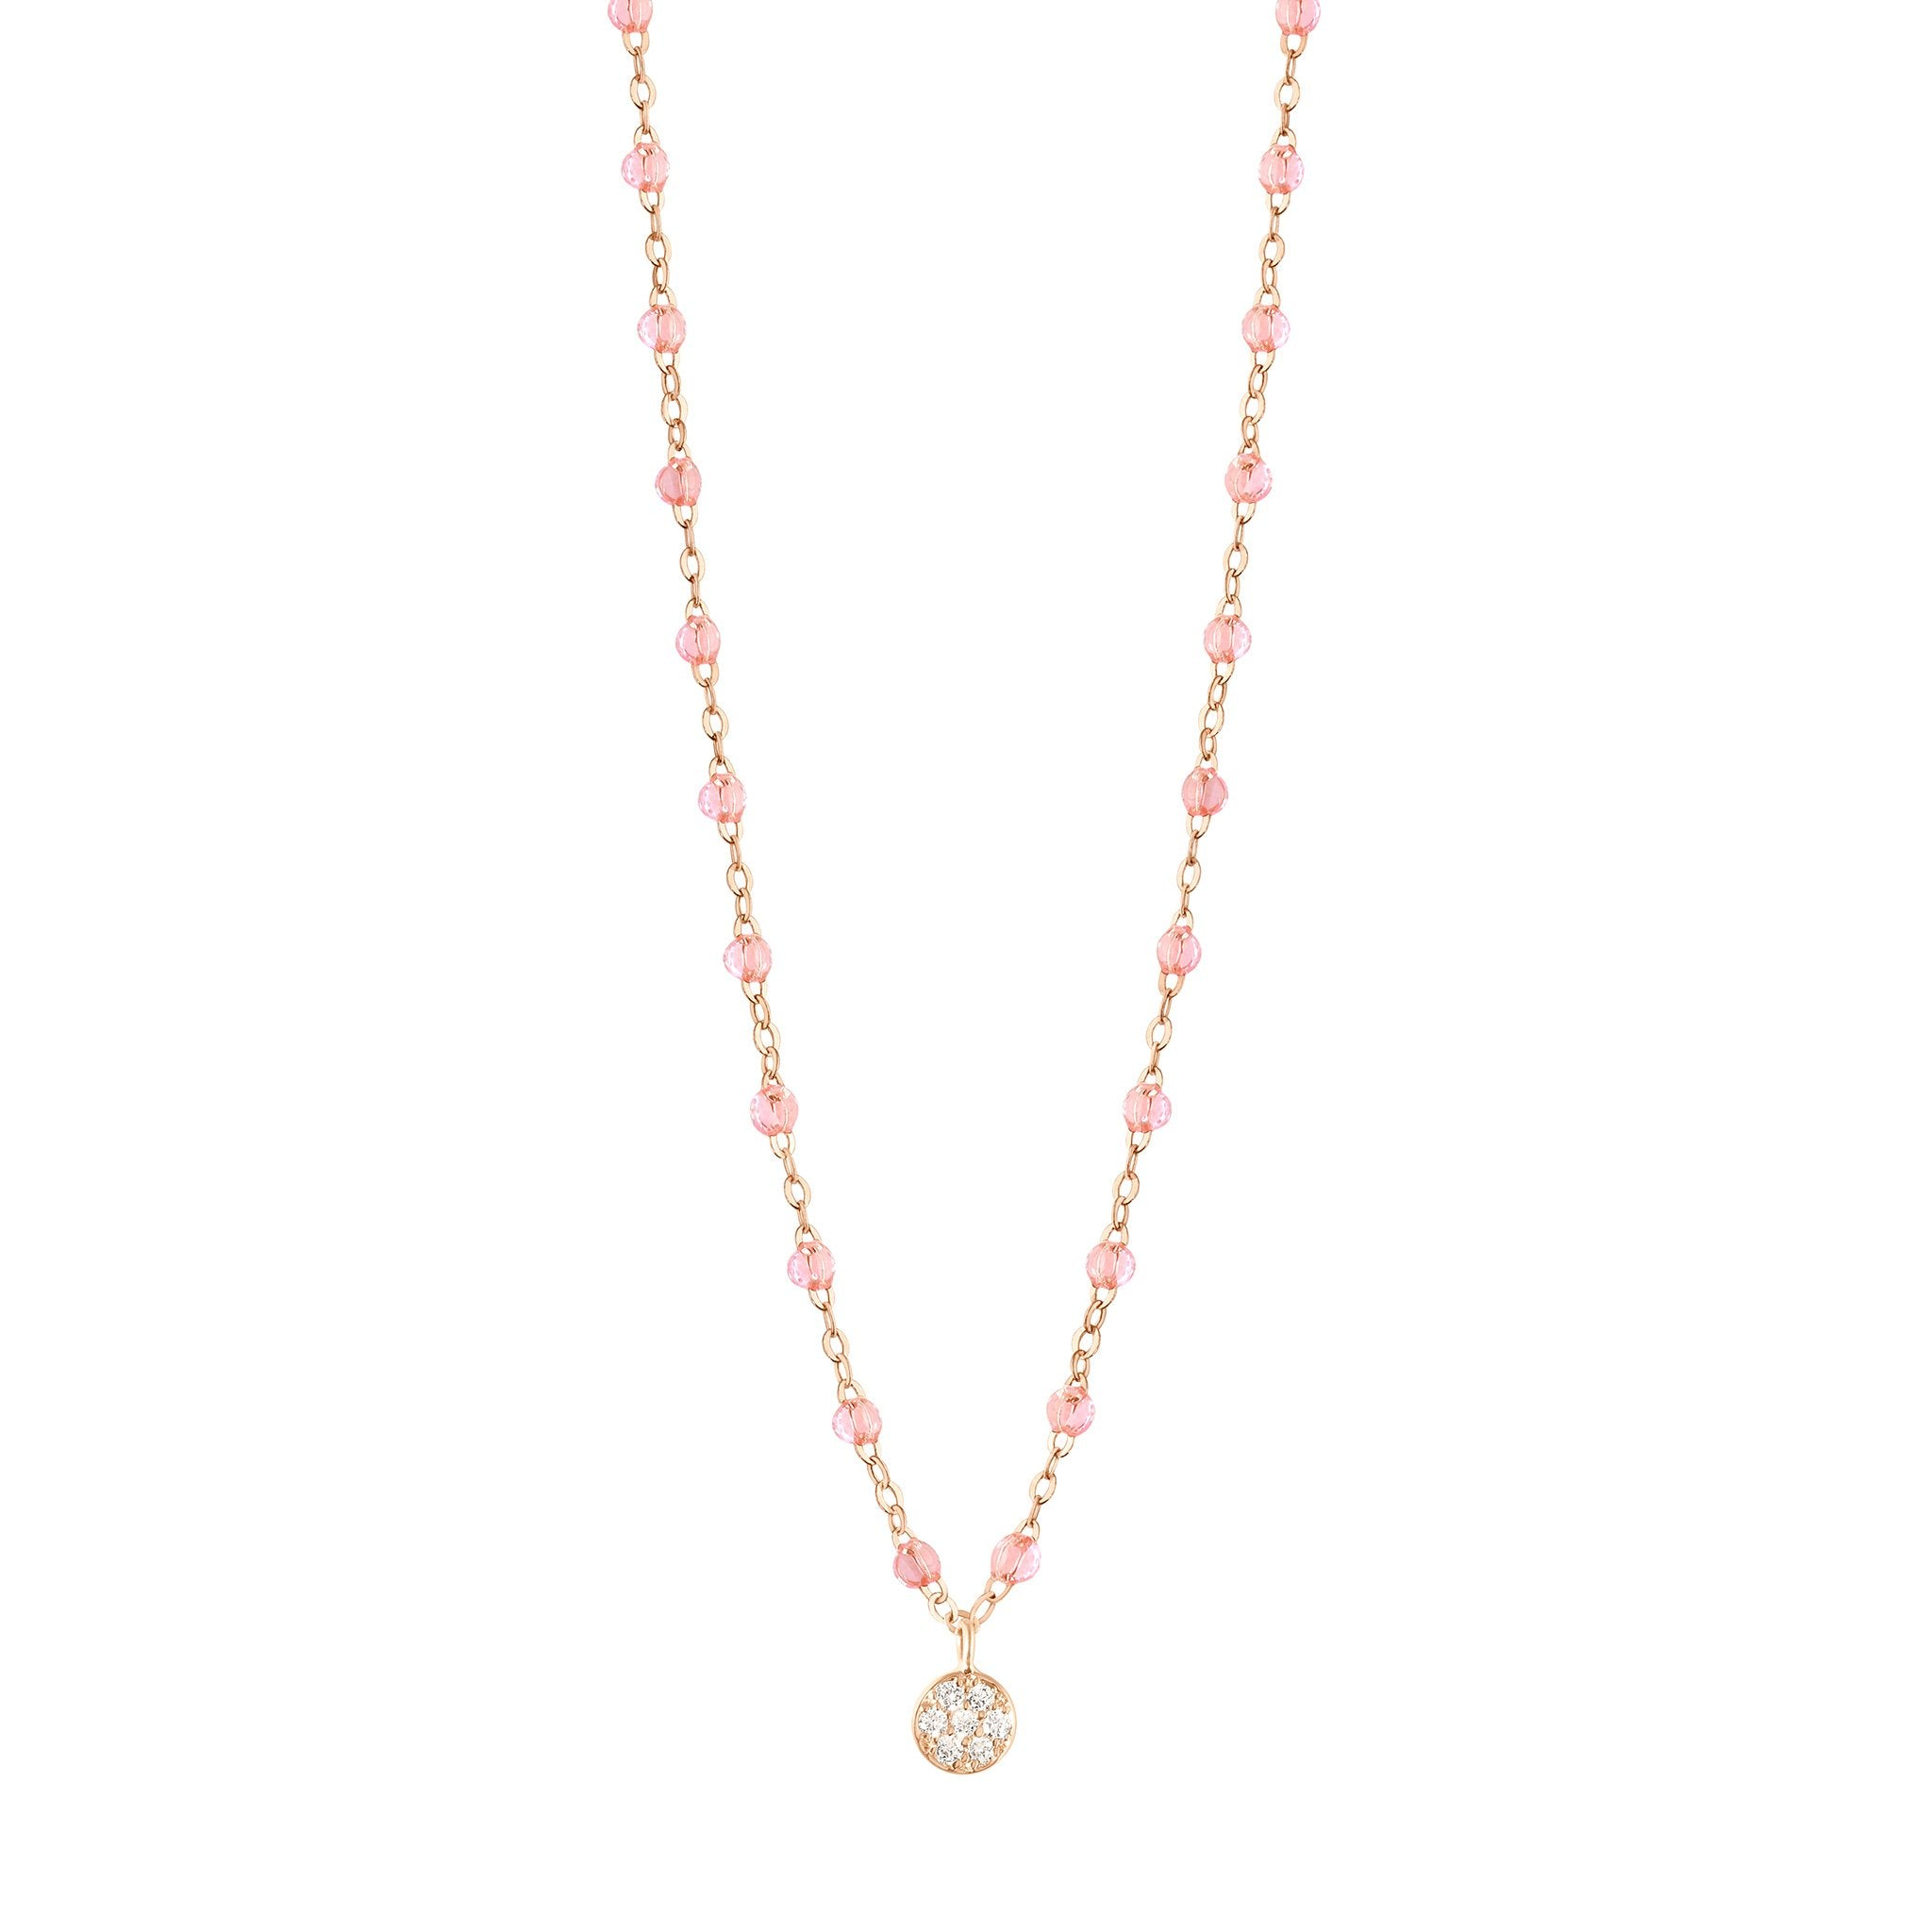 Gigi Clozeau - Collier rosée Puce diamants, or rose, 42 cm